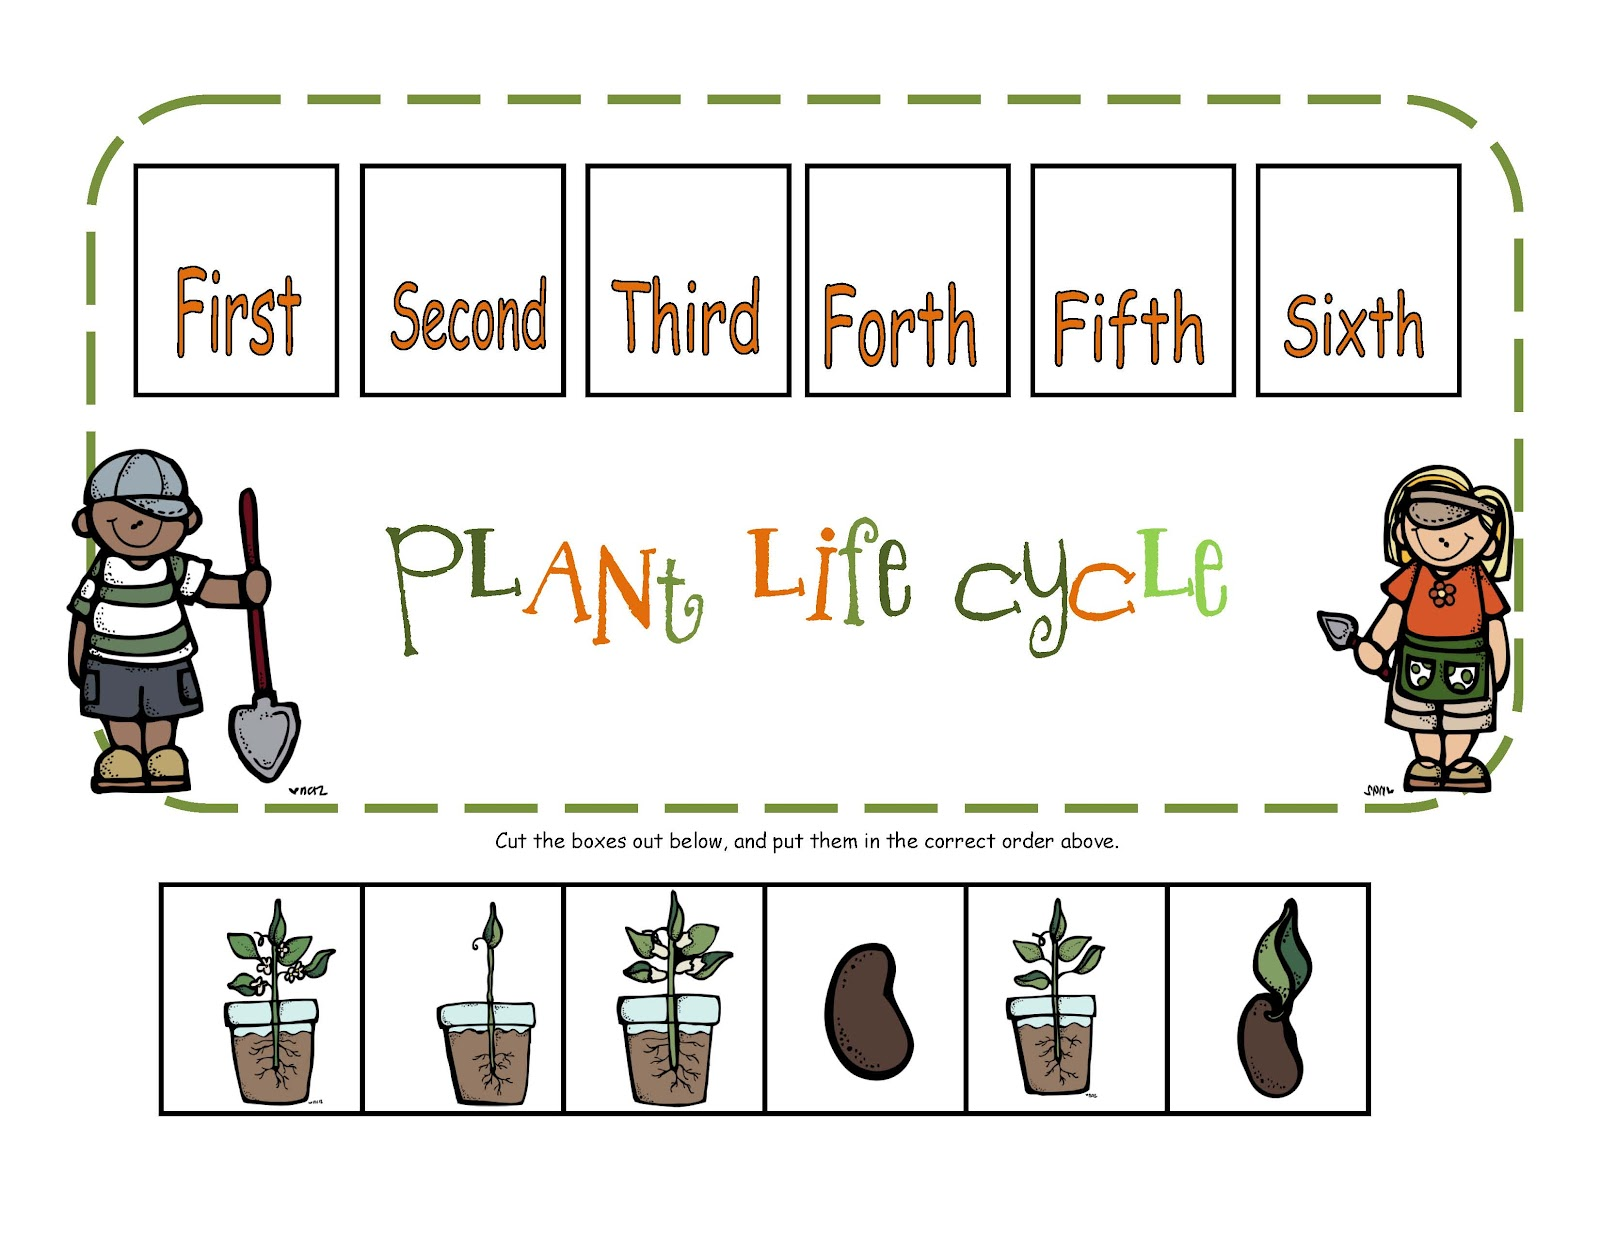 Worksheets Plant Cycle Worksheet plant life cycle in order by caroline soesbee teachers pay teachers